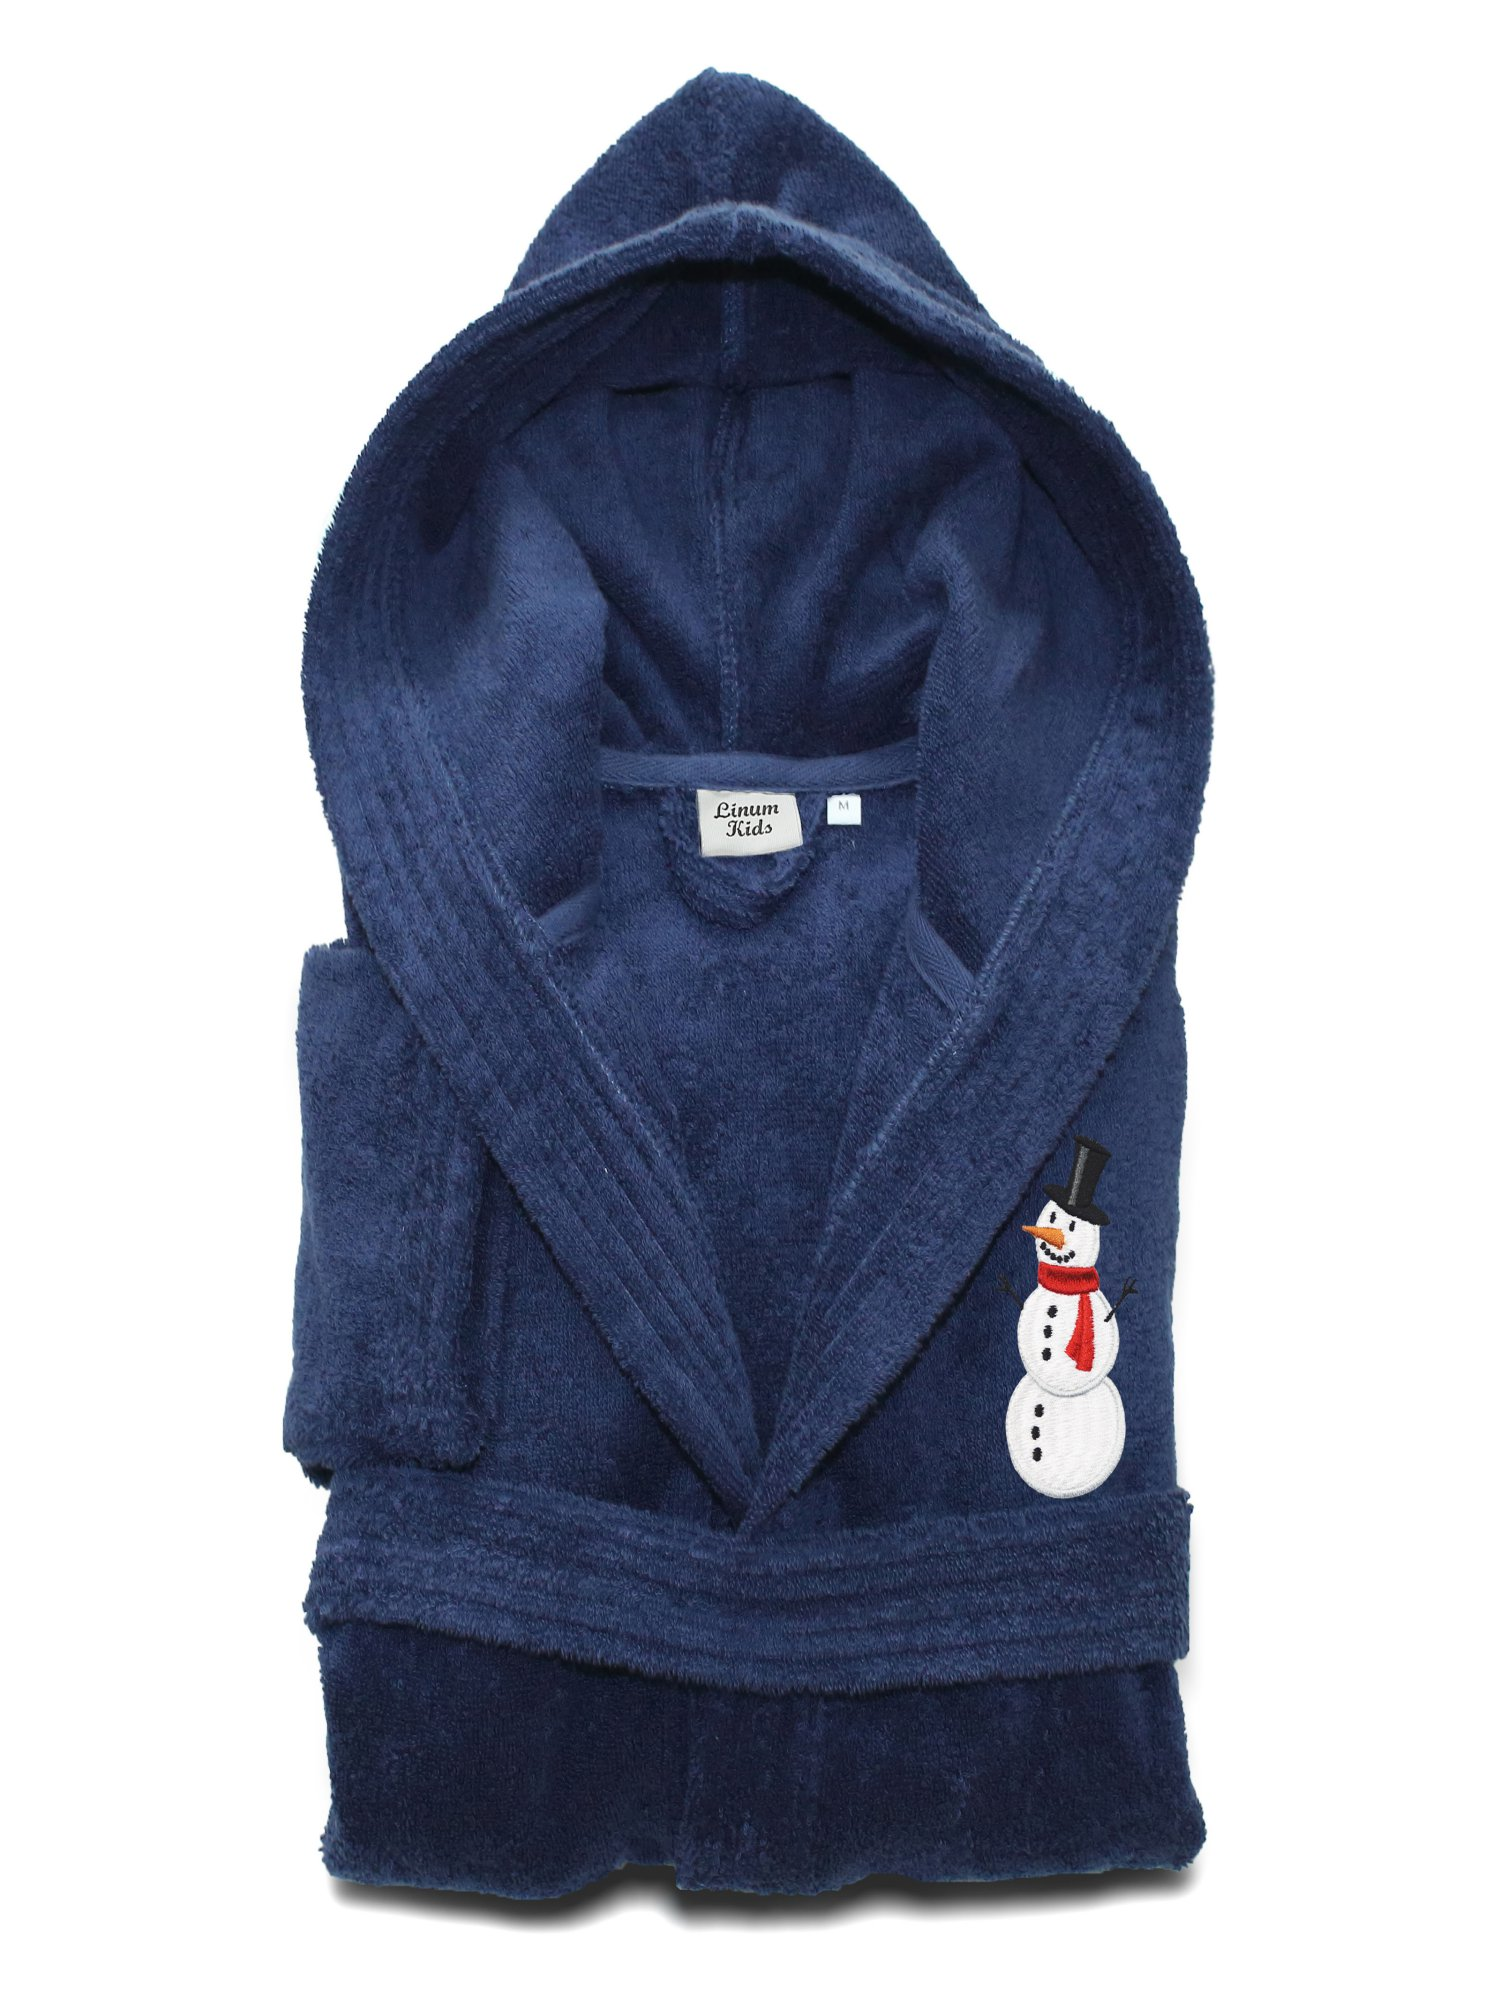 Linum Home Textiles Linum Kids Turkish Cotton Hooded Terry Bathrobe - Snowman